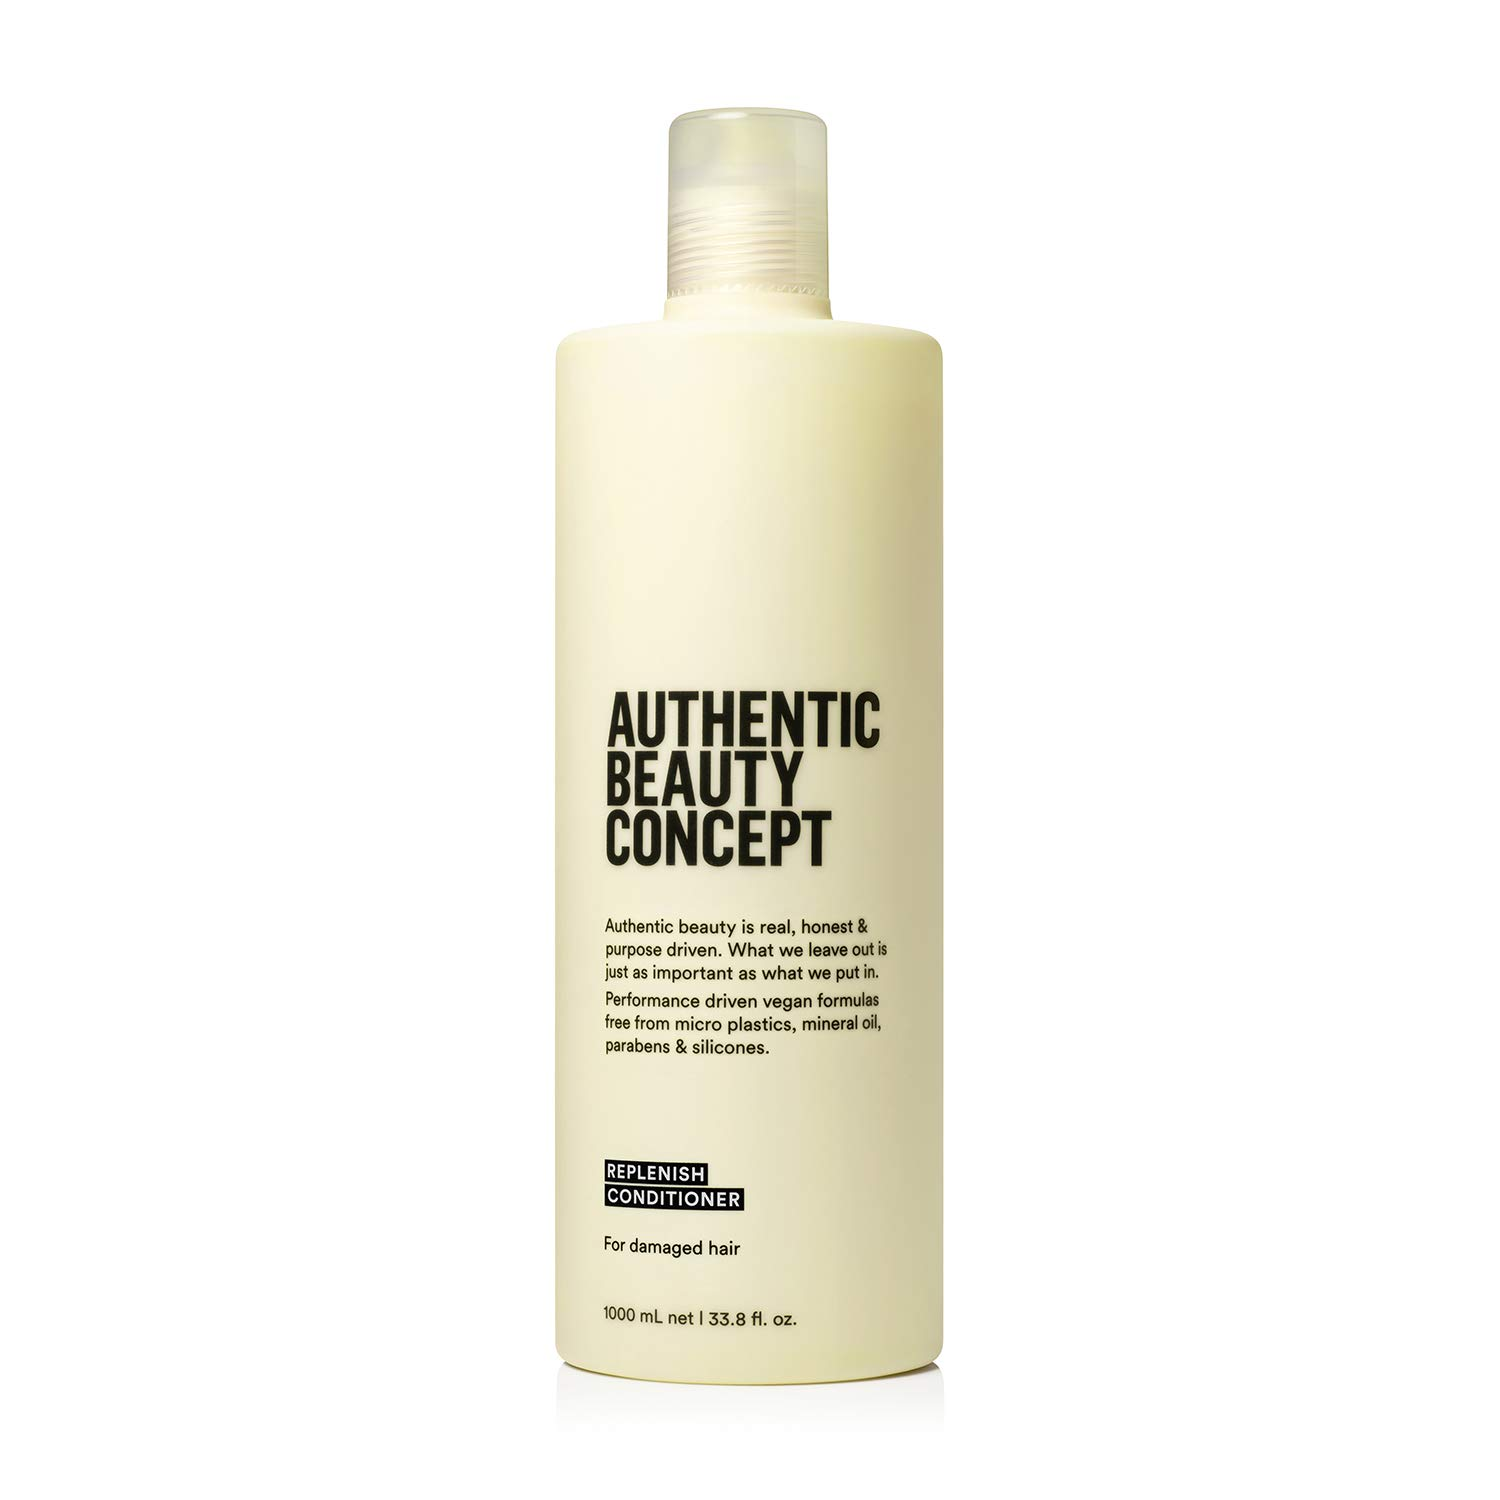 Authentic Beauty Concept Replenish Conditioner Hair 5% OFF Industry No. 1 Damaged